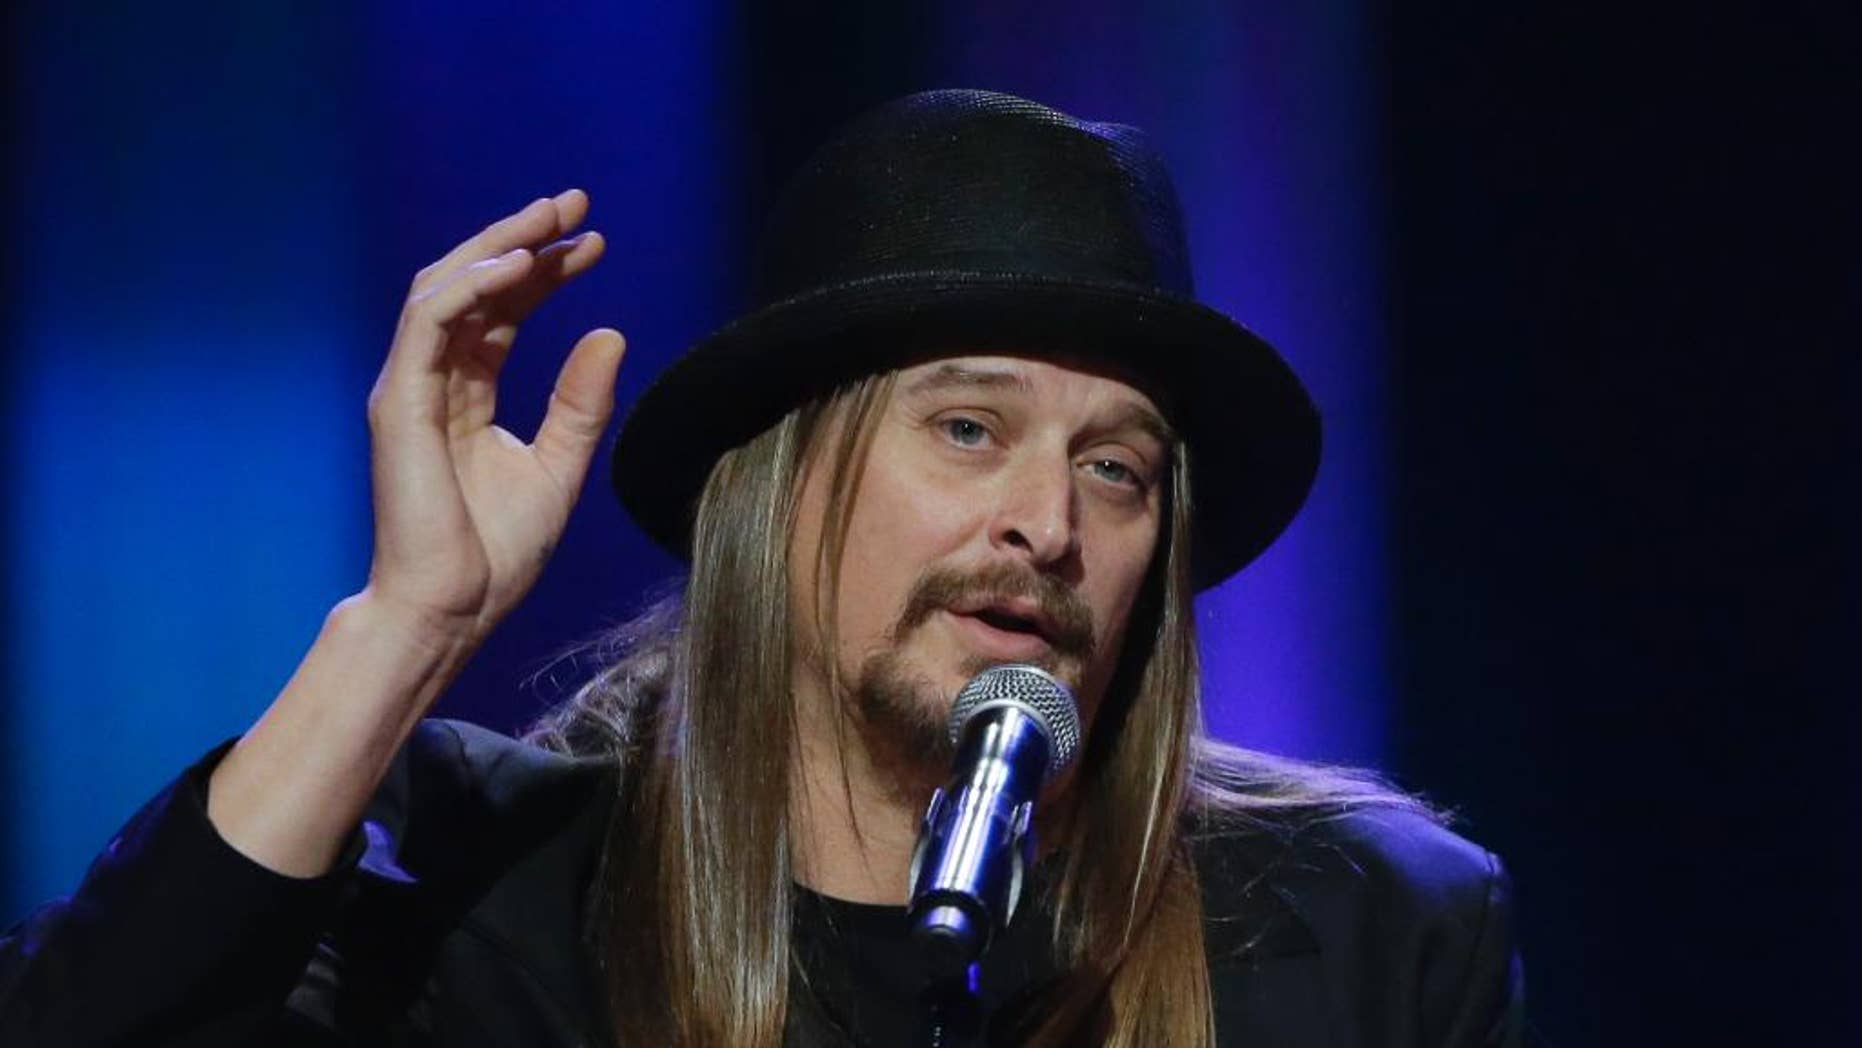 """FILE - This May 2, 2013, file photo shows Kid Rock speaking during the funeral for country music star George Jones at the Grand Ole Opry House in Nashville, Tenn. Kid Rock will perform a pre-race concert at the Daytona 500 in February. Daytona International Speedway said Friday, Dec. 19, 2014, he will play several hits as well as new single """"First Kiss."""" (AP Photo/Mark Humphrey, Pool)"""